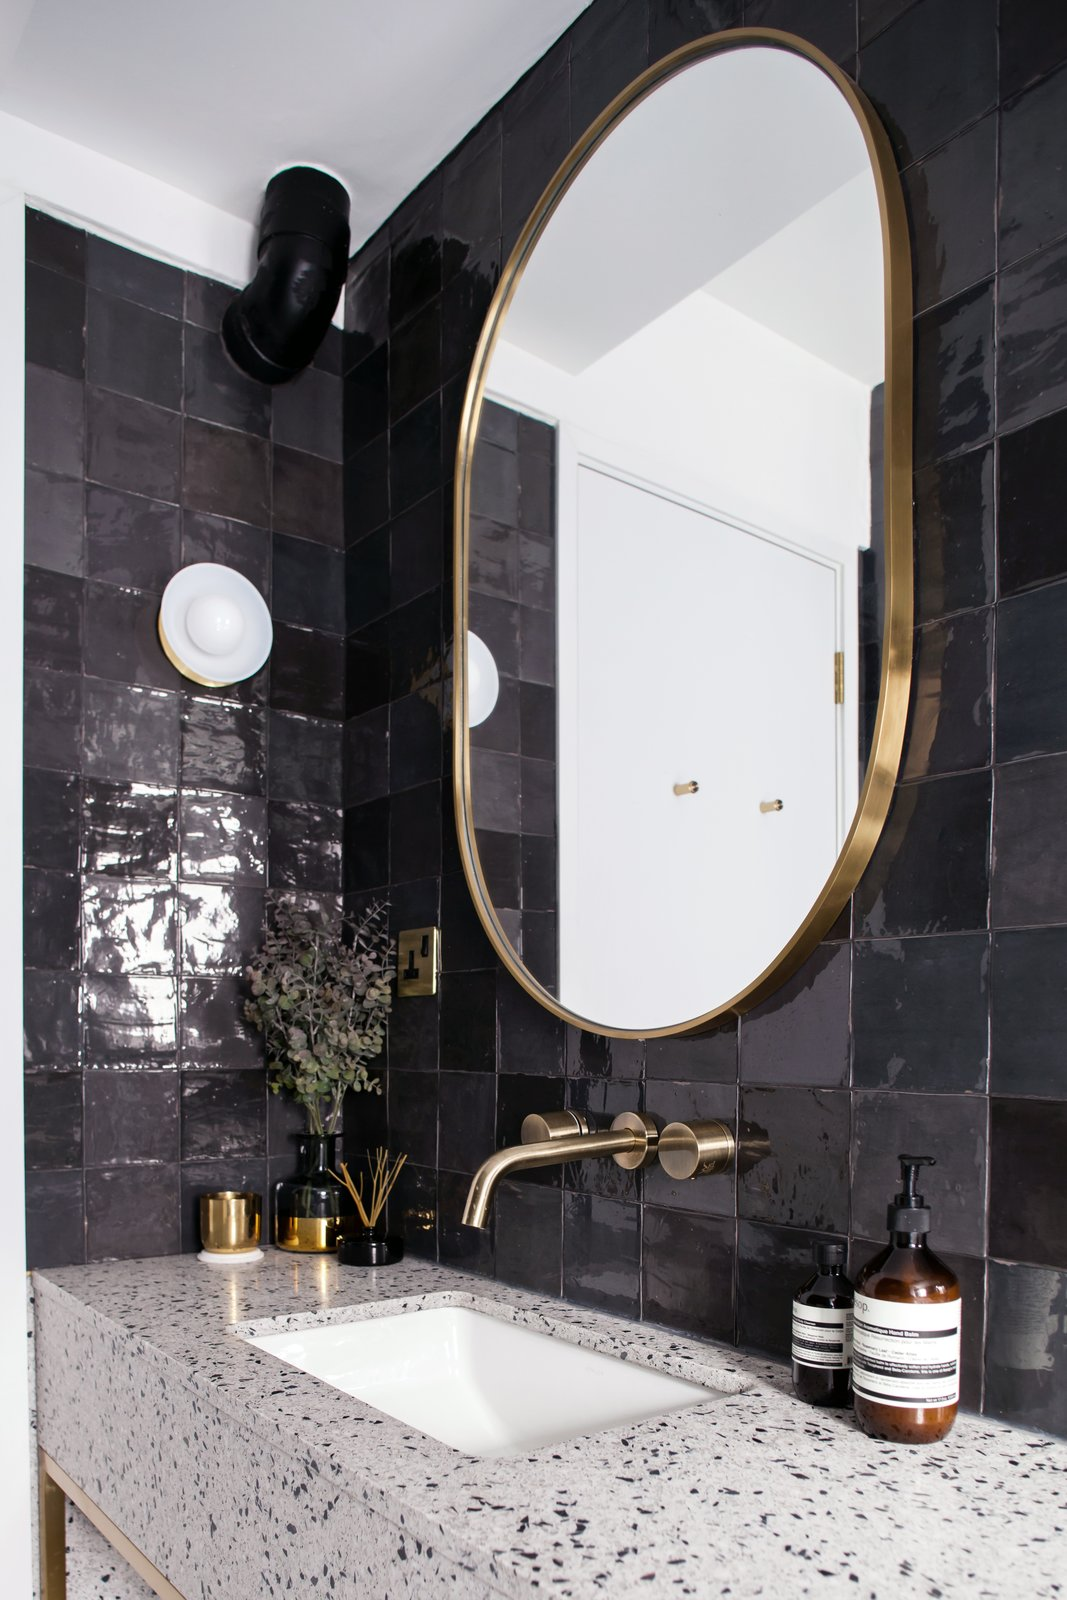 Bath Room, Terrazzo Floor, Alcove Tub, Wall Lighting, Stone Counter, Recessed Lighting, Drop In Sink, One Piece Toilet, and Ceramic Tile Wall Guest bathroom detail with terrazzo, dark grey tiles, and brass accents  Photos from Quarry Bay Residence